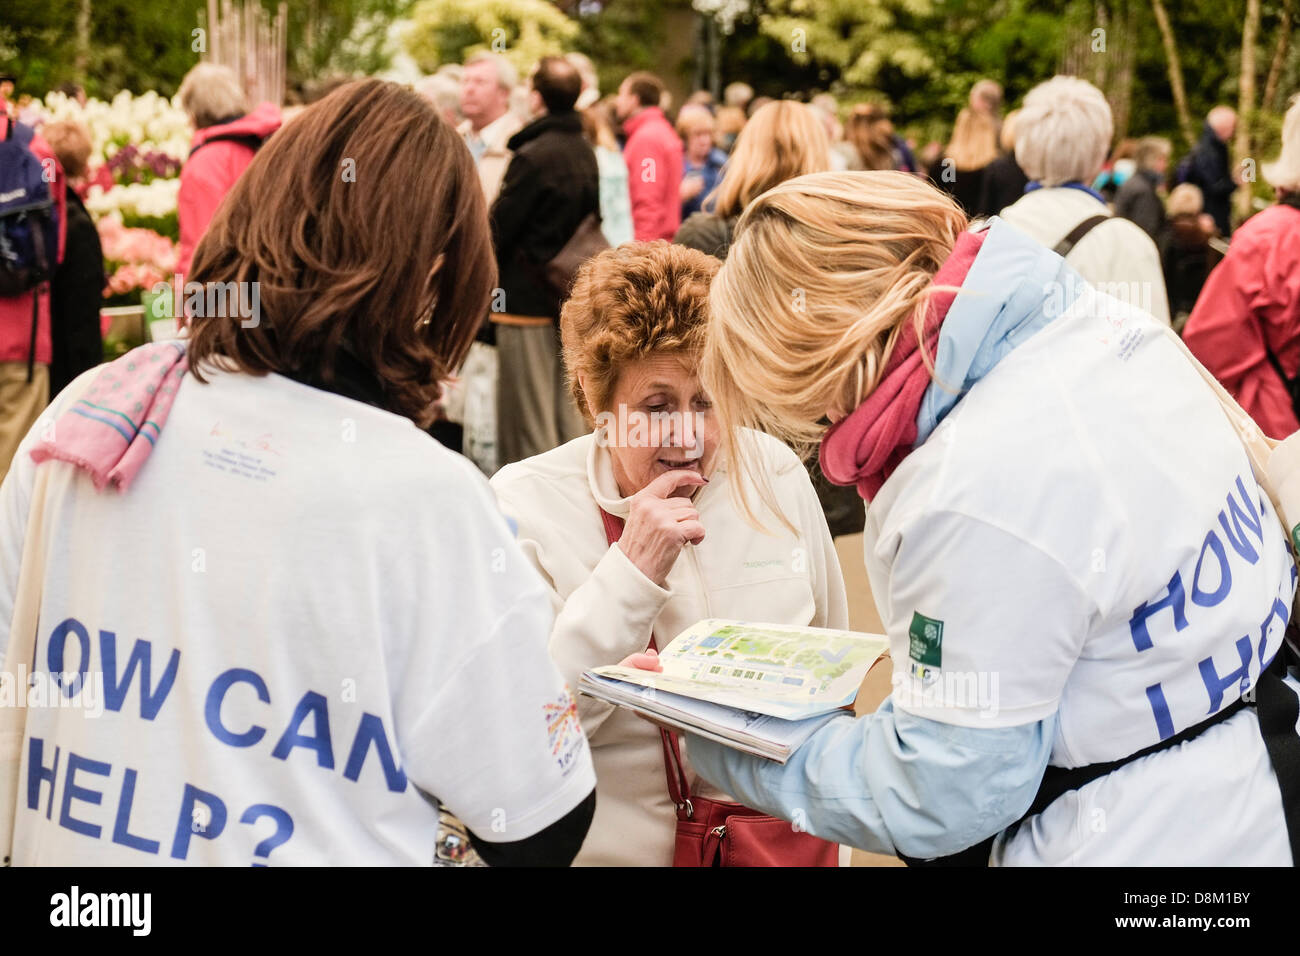 A woman asking for assistance at the Chelsea Flower Show. - Stock Image